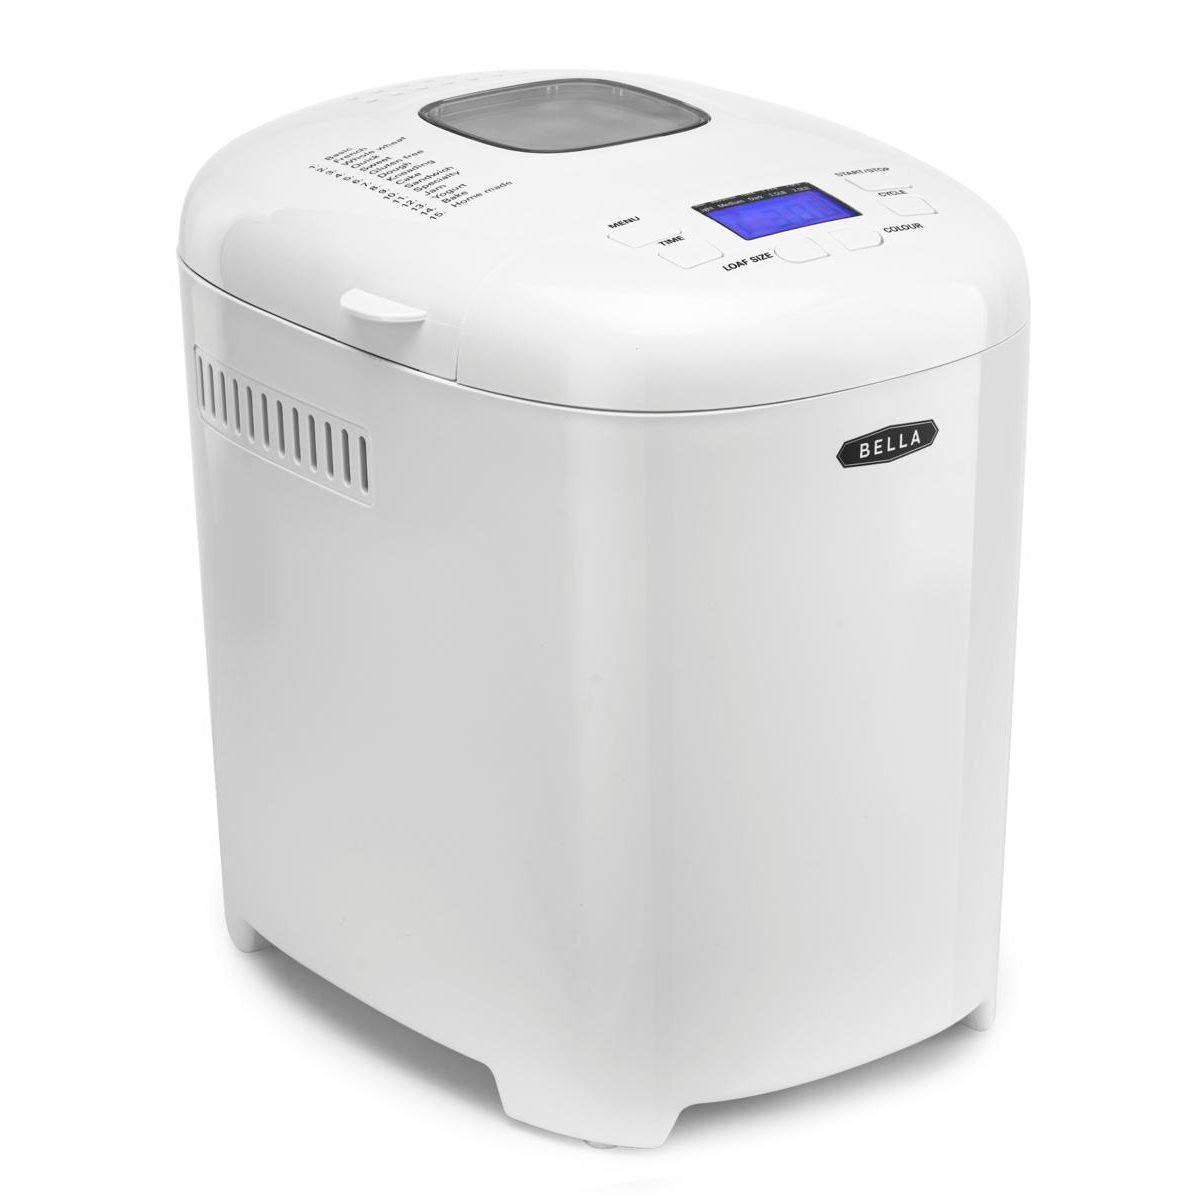 Bella 2-lb. Bread Maker